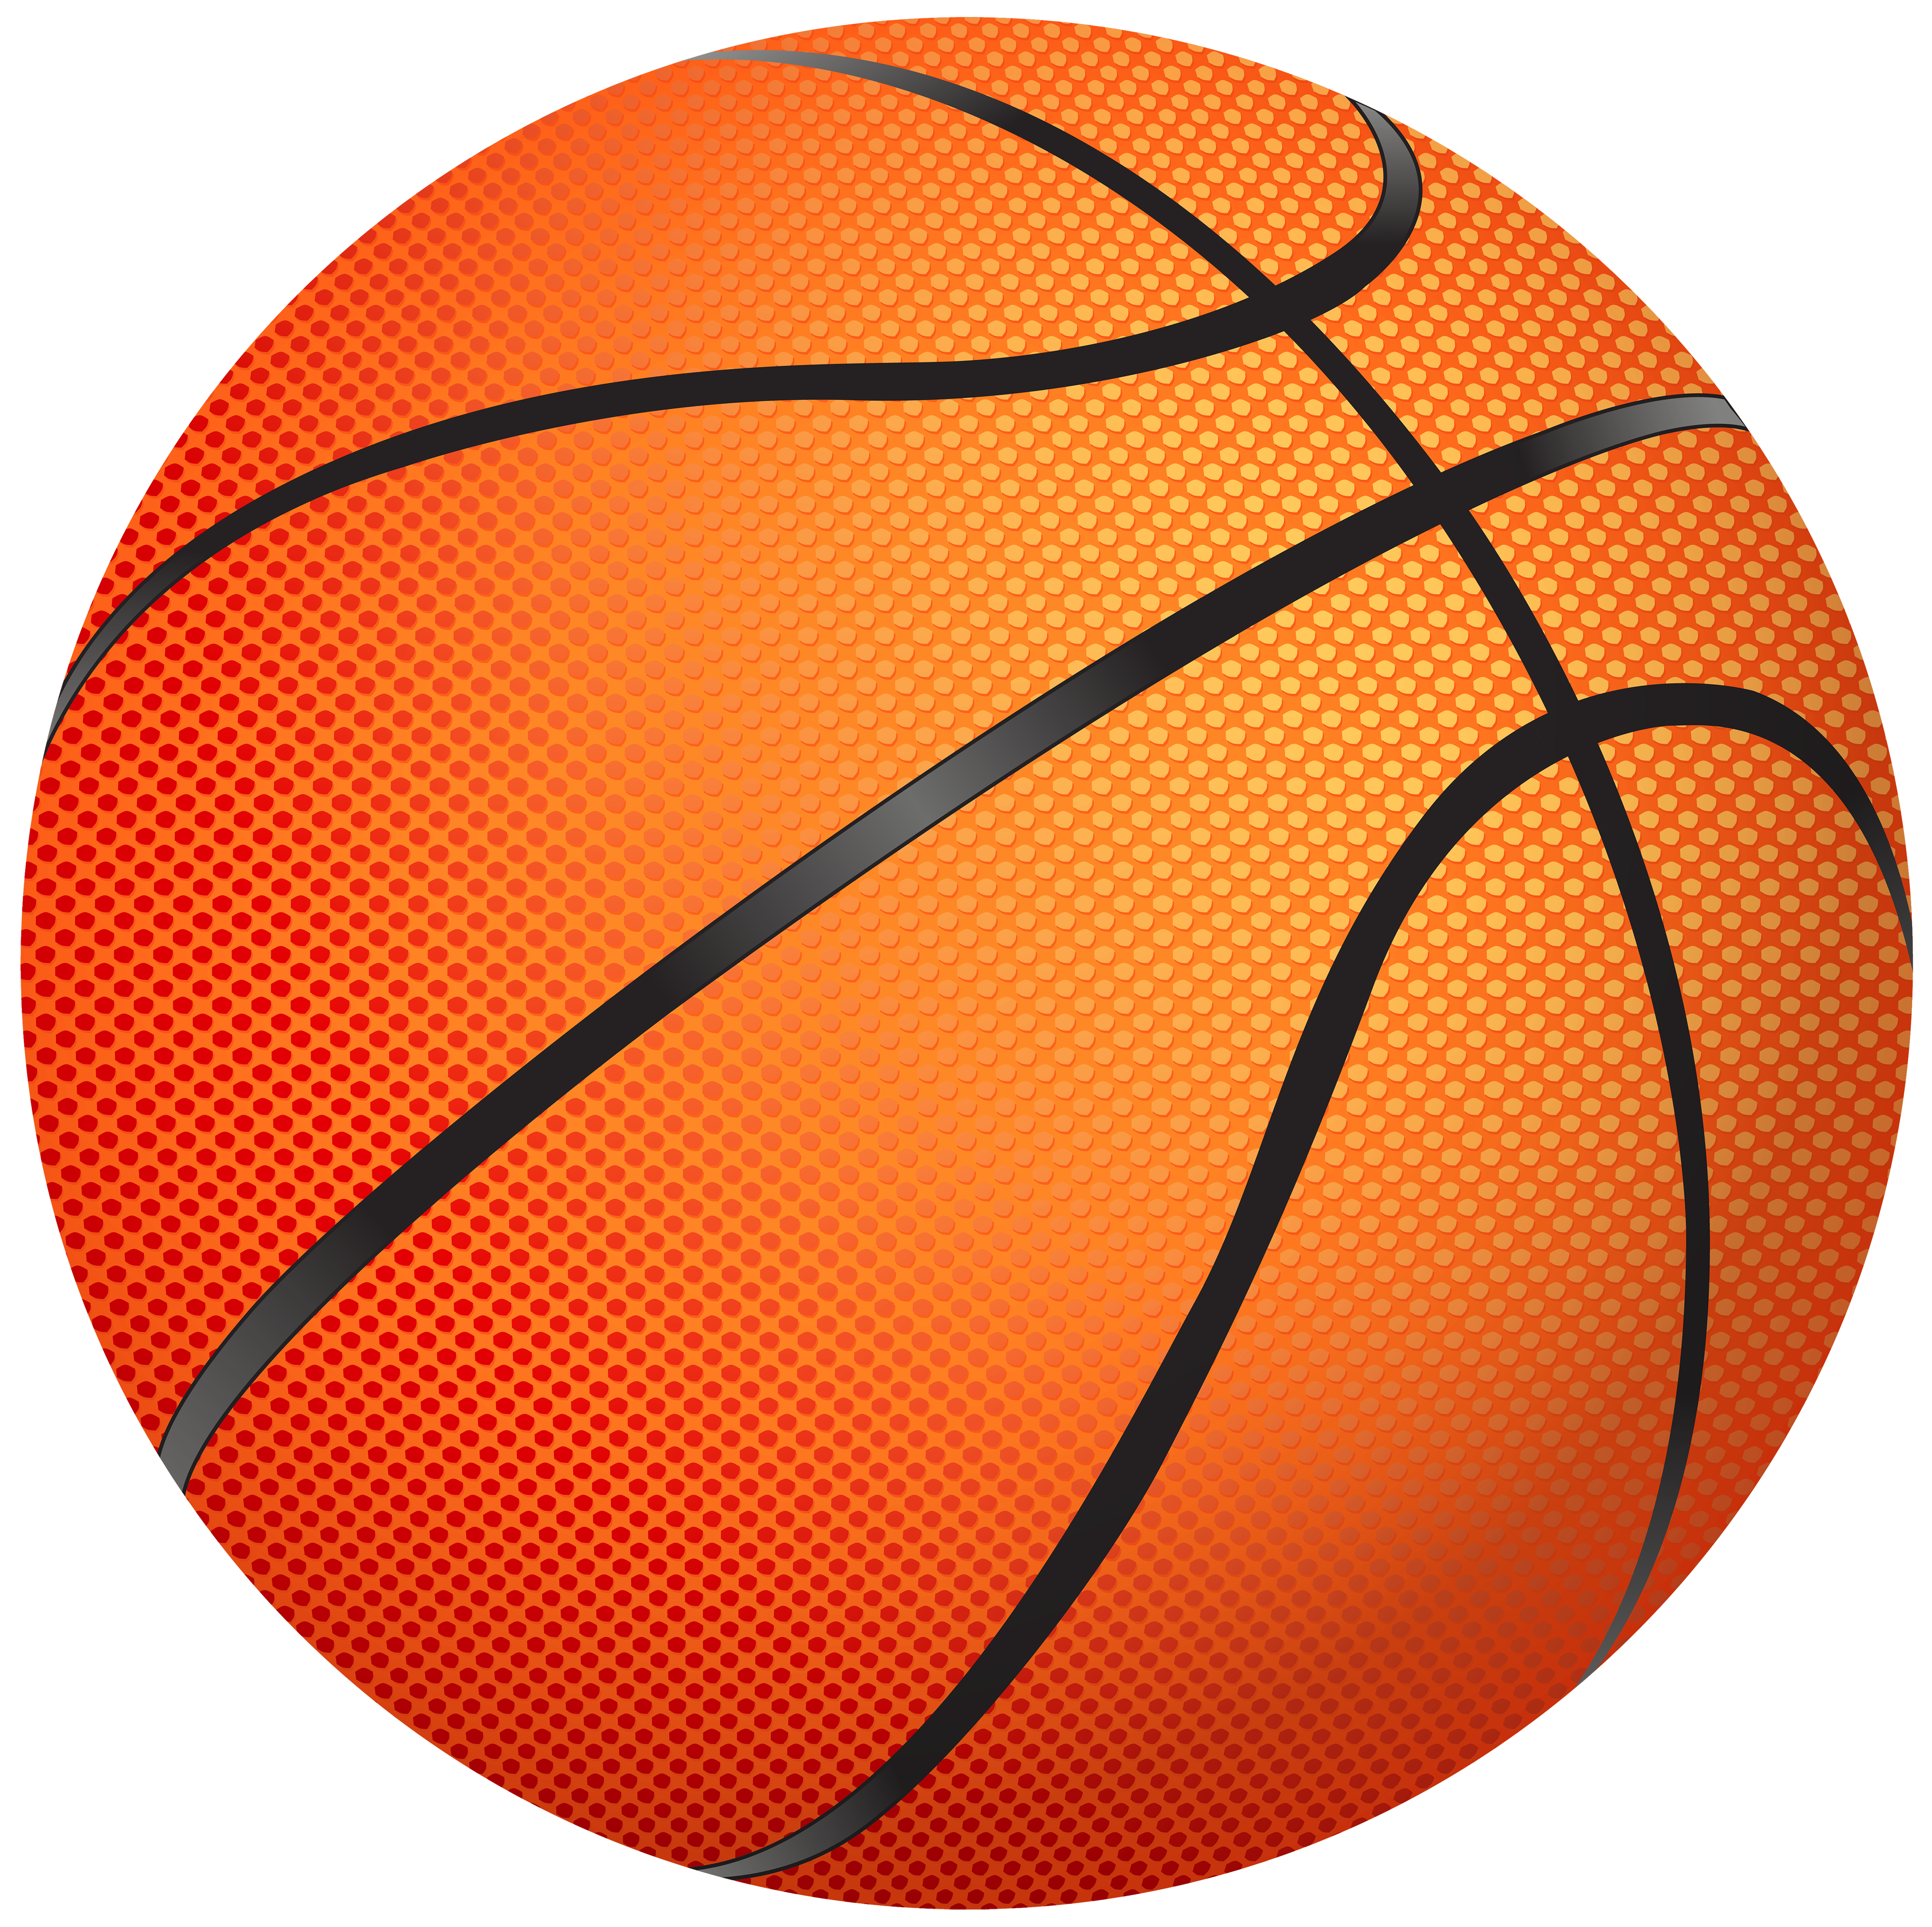 Png best web. Clipart free basketball